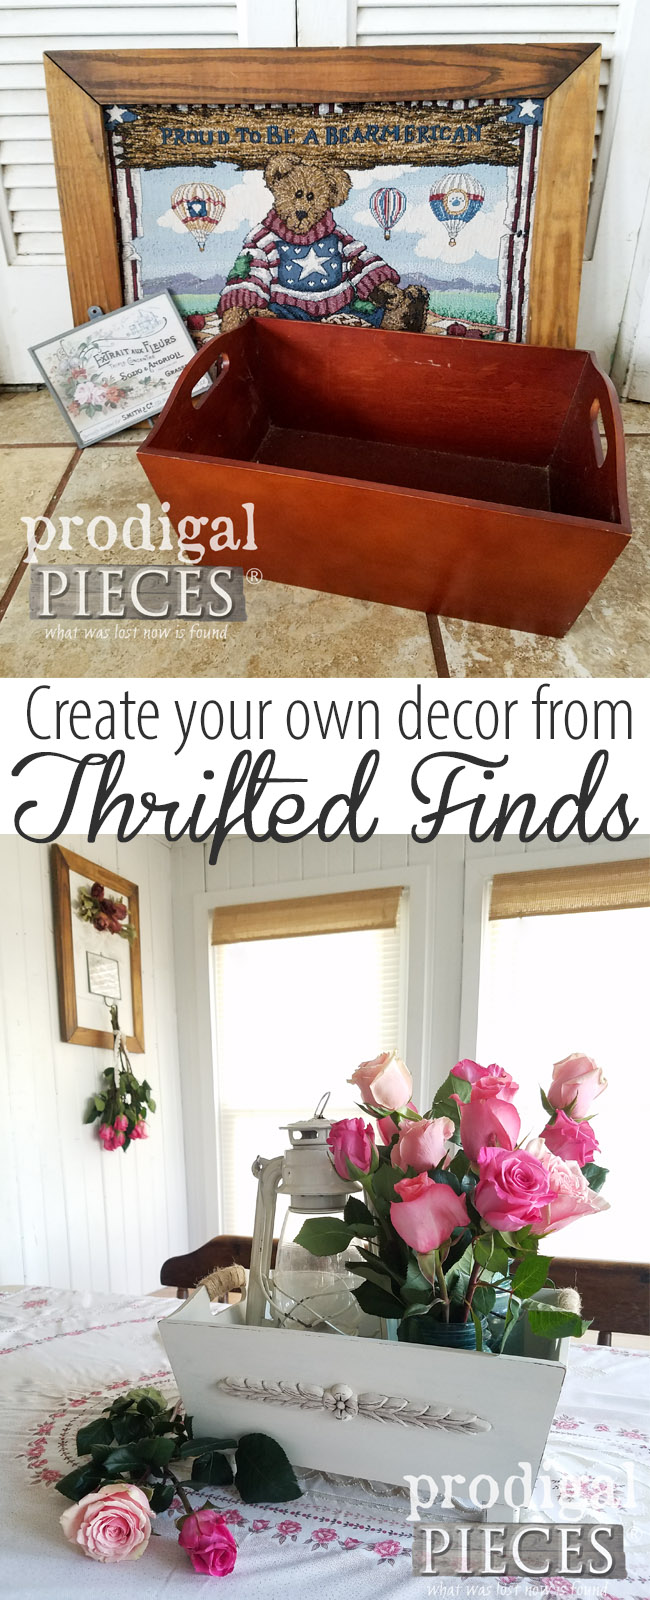 Who knew thrift store finds could look so good! Come see how a little TLC goes a long way to create your own DIY Decor with Larissa of Prodigal Pieces | prodigalpieces.com